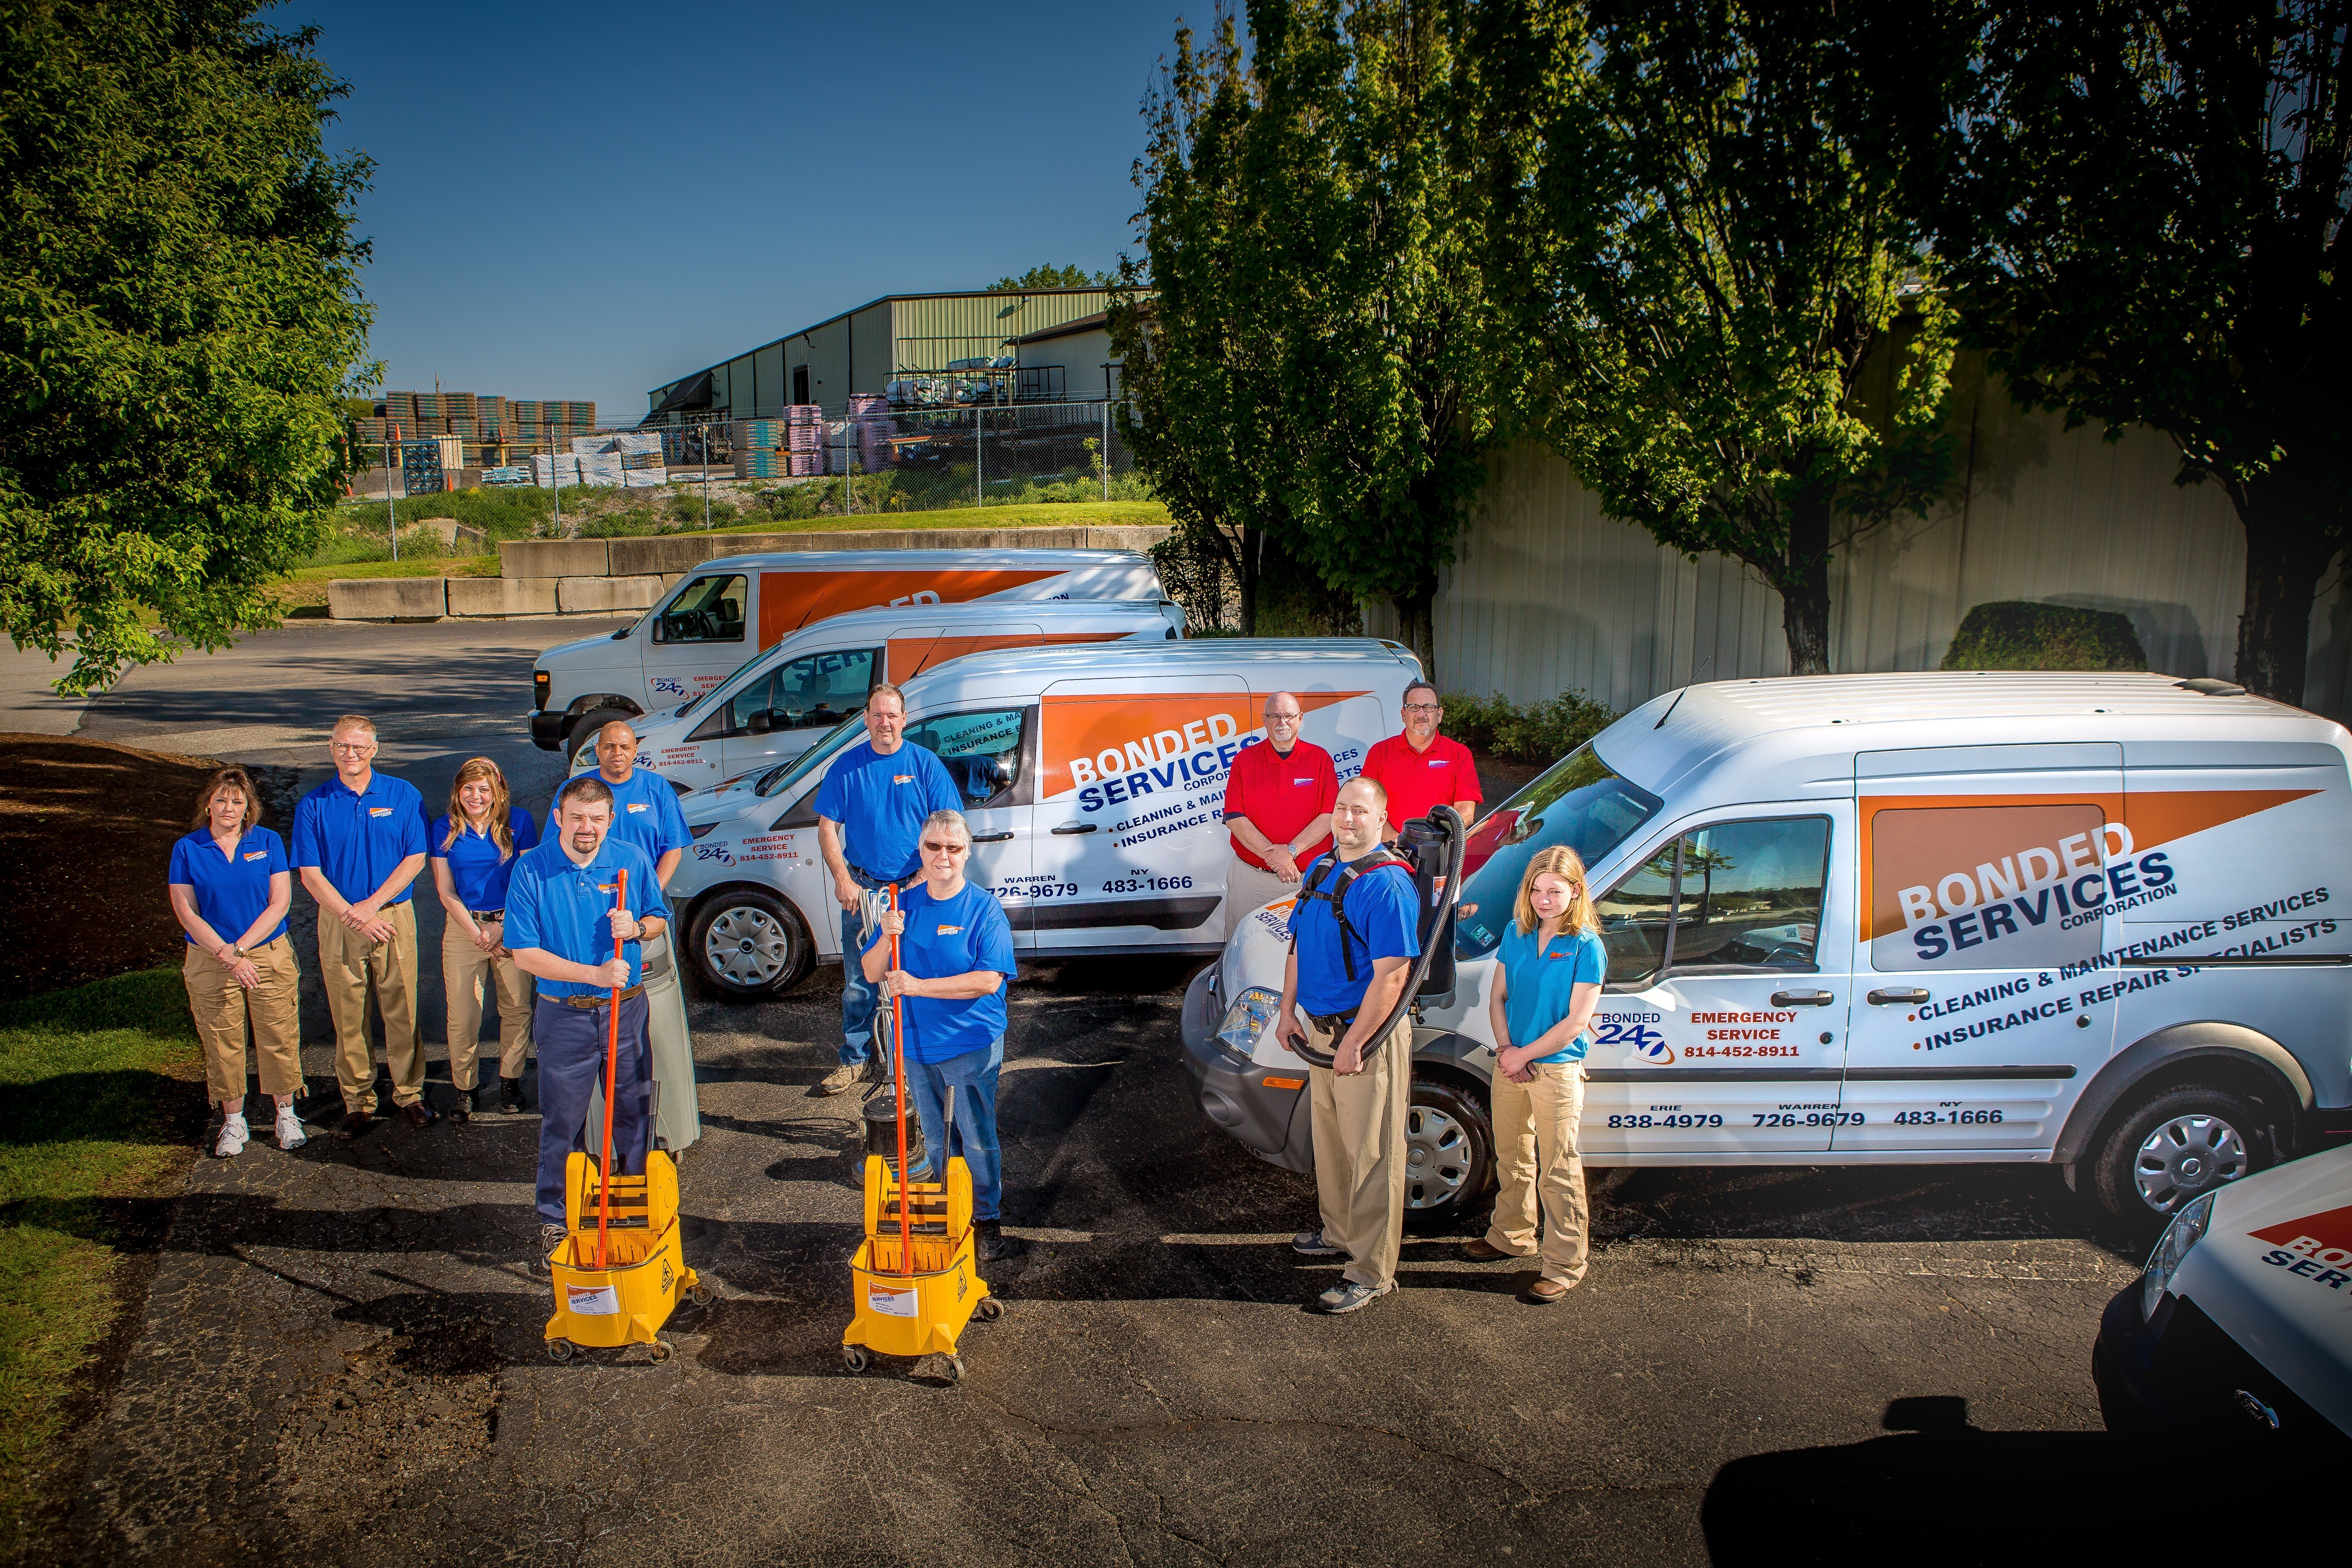 Bonded Services Erie PA Janitorial Services Team